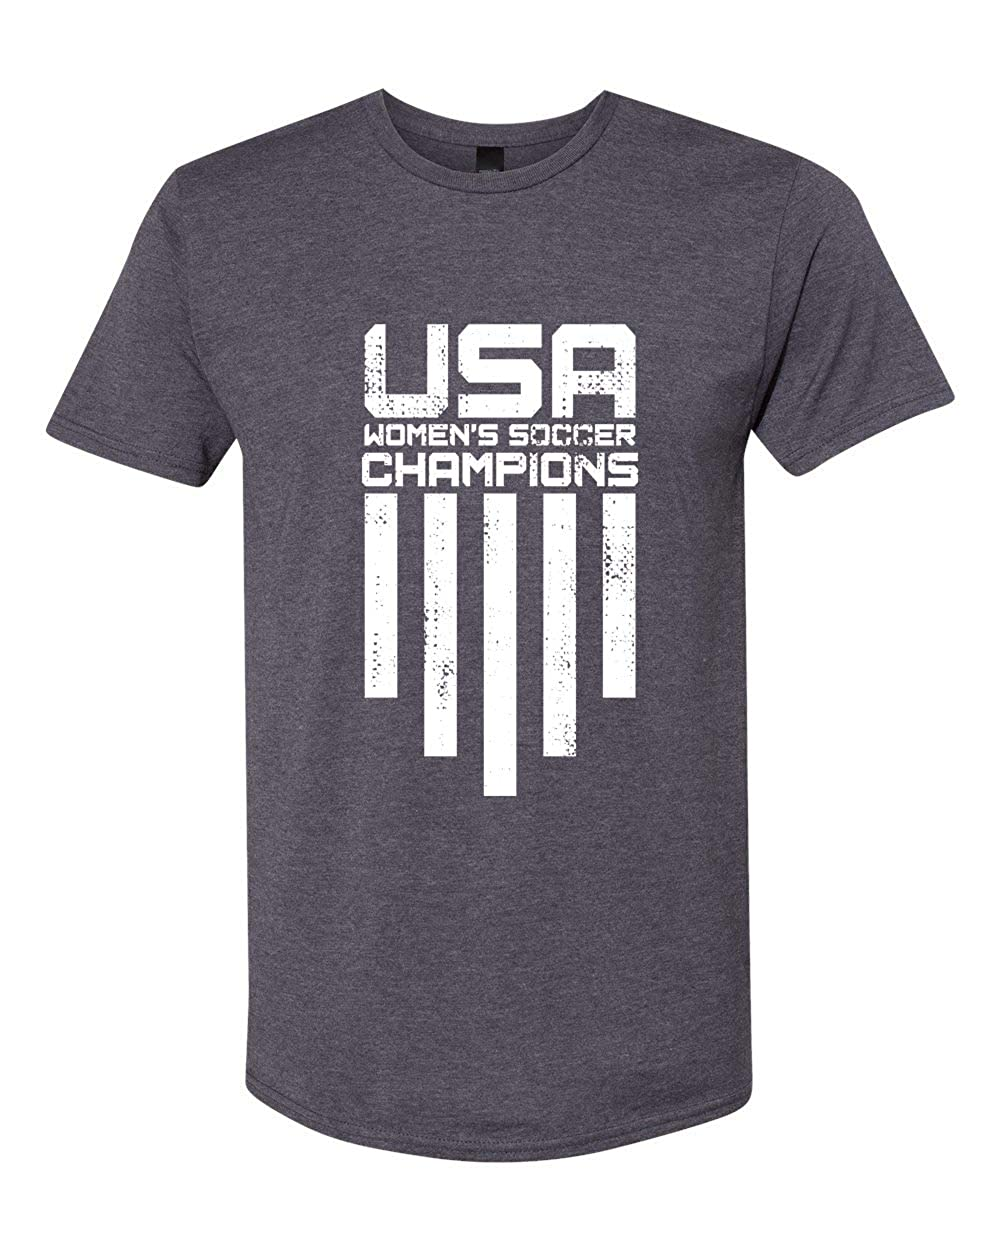 USA Womens Soccer Champions Unisex Graphic Tees Short Sleeve